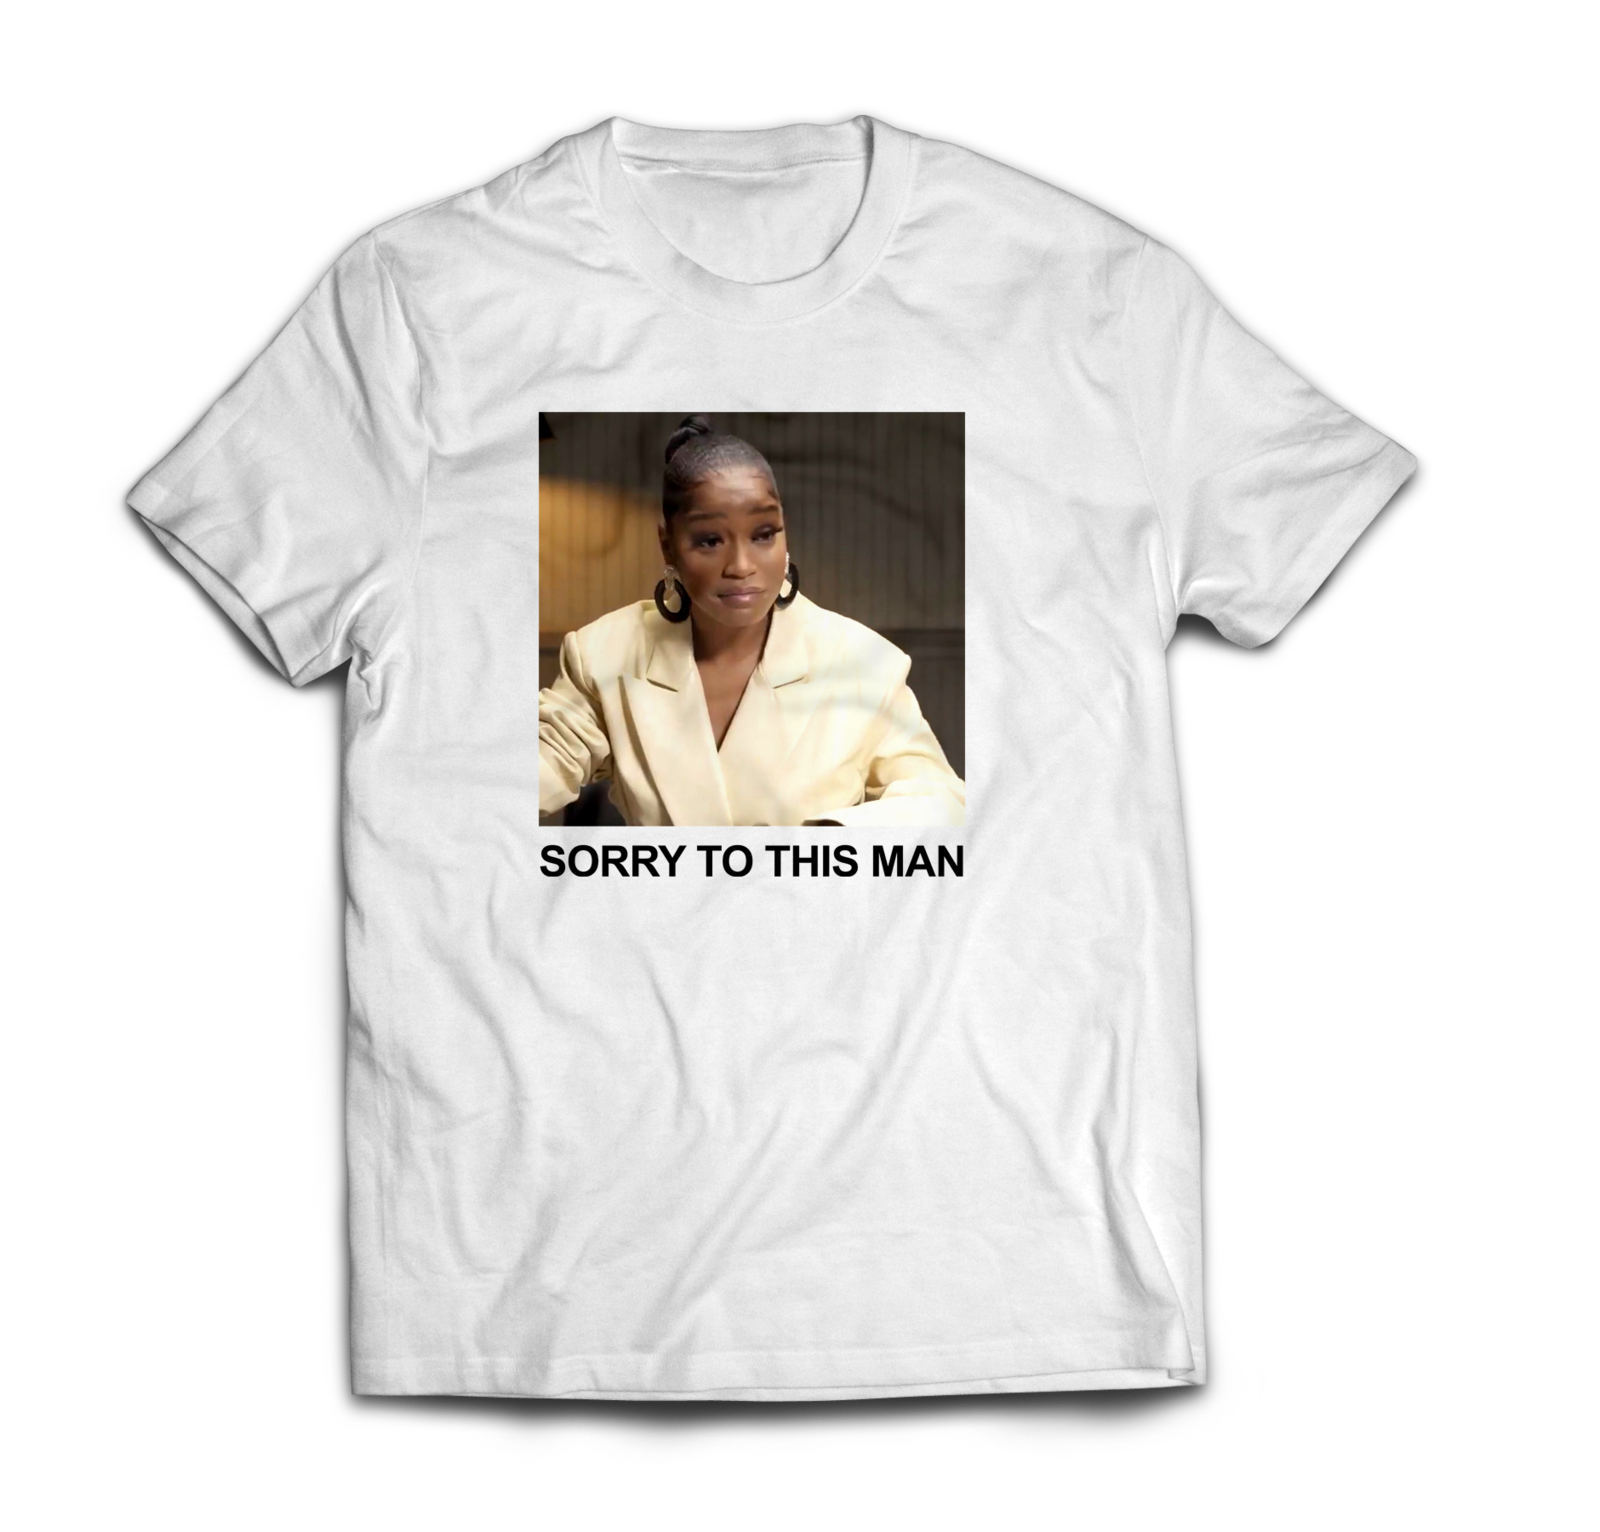 The Gag Is! Keke Palmer is Cashing in On Hilarious 'Sorry To This Man' Meme With Merch